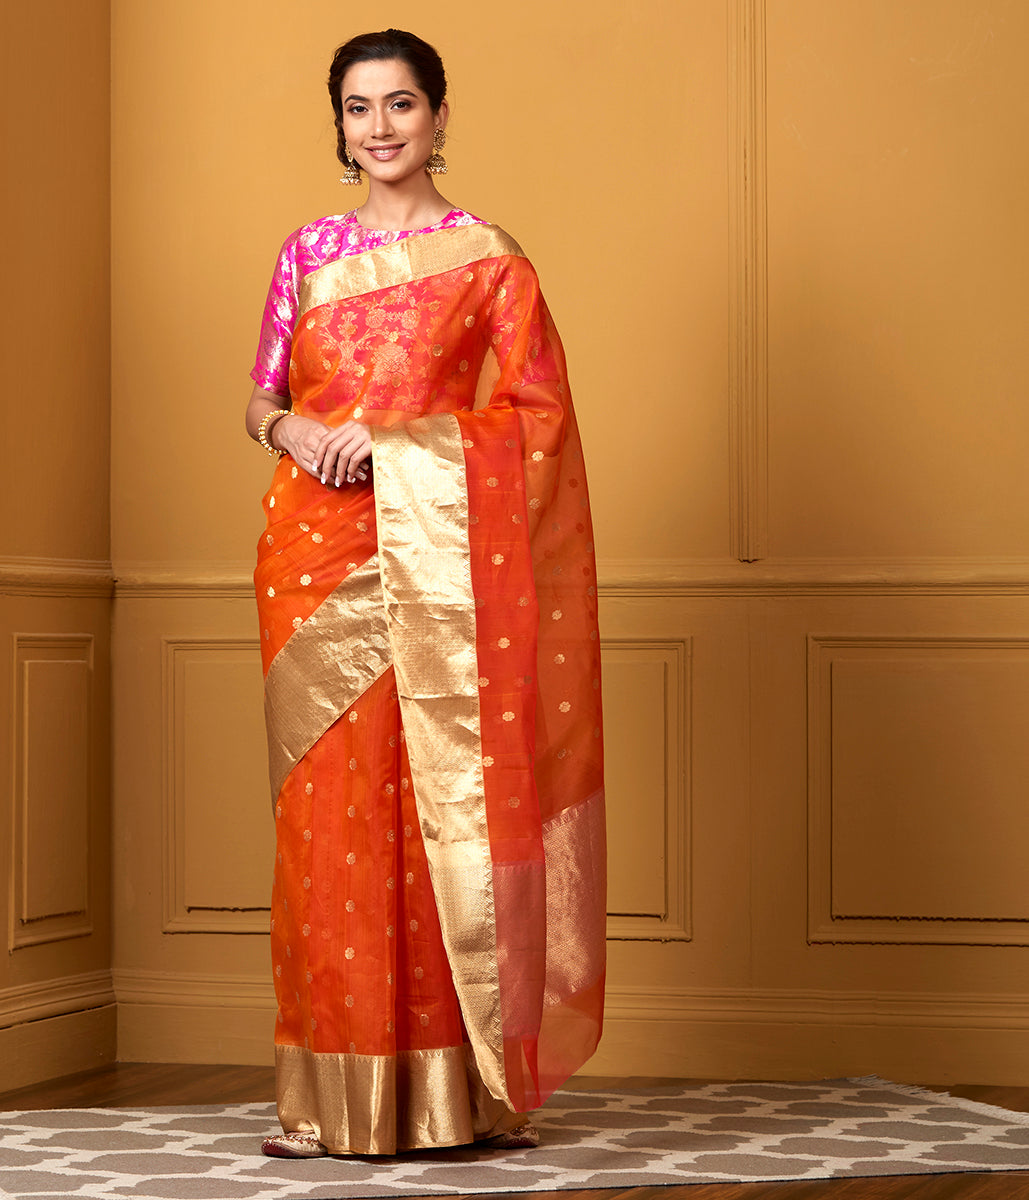 Handwoven Orange Kora Saree with Gold Zari Border